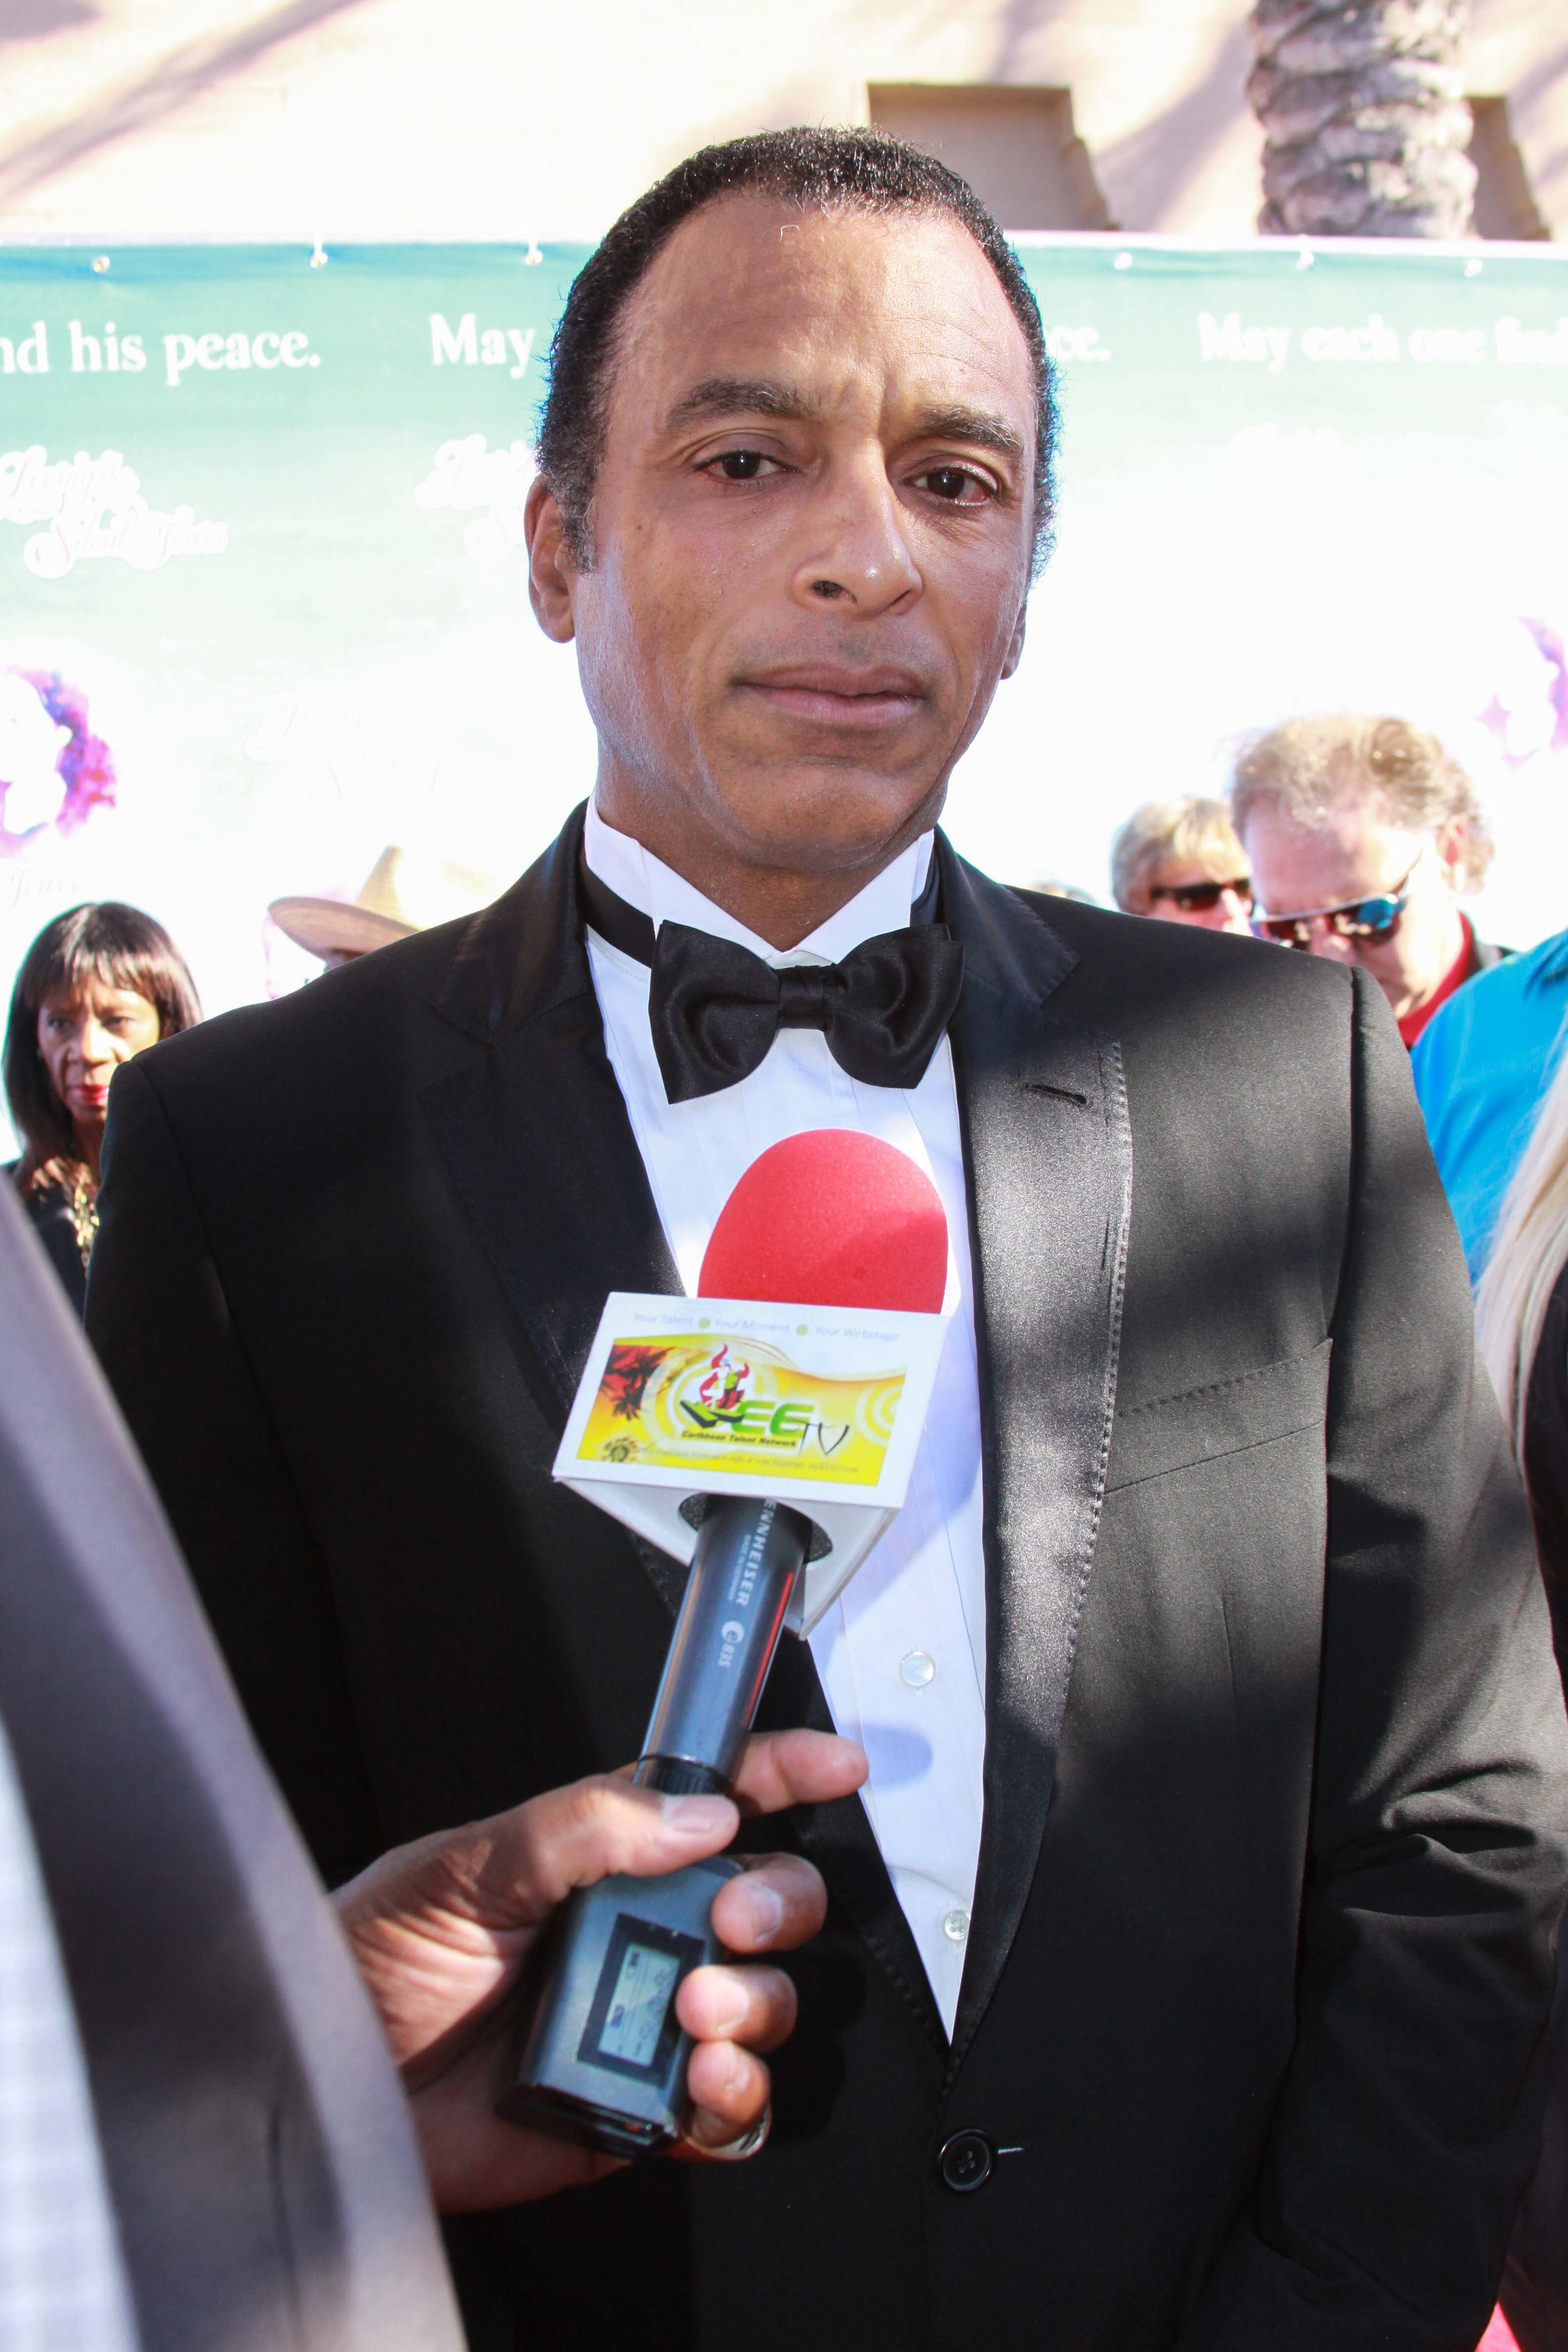 Jon Secada chats with myKEEtv